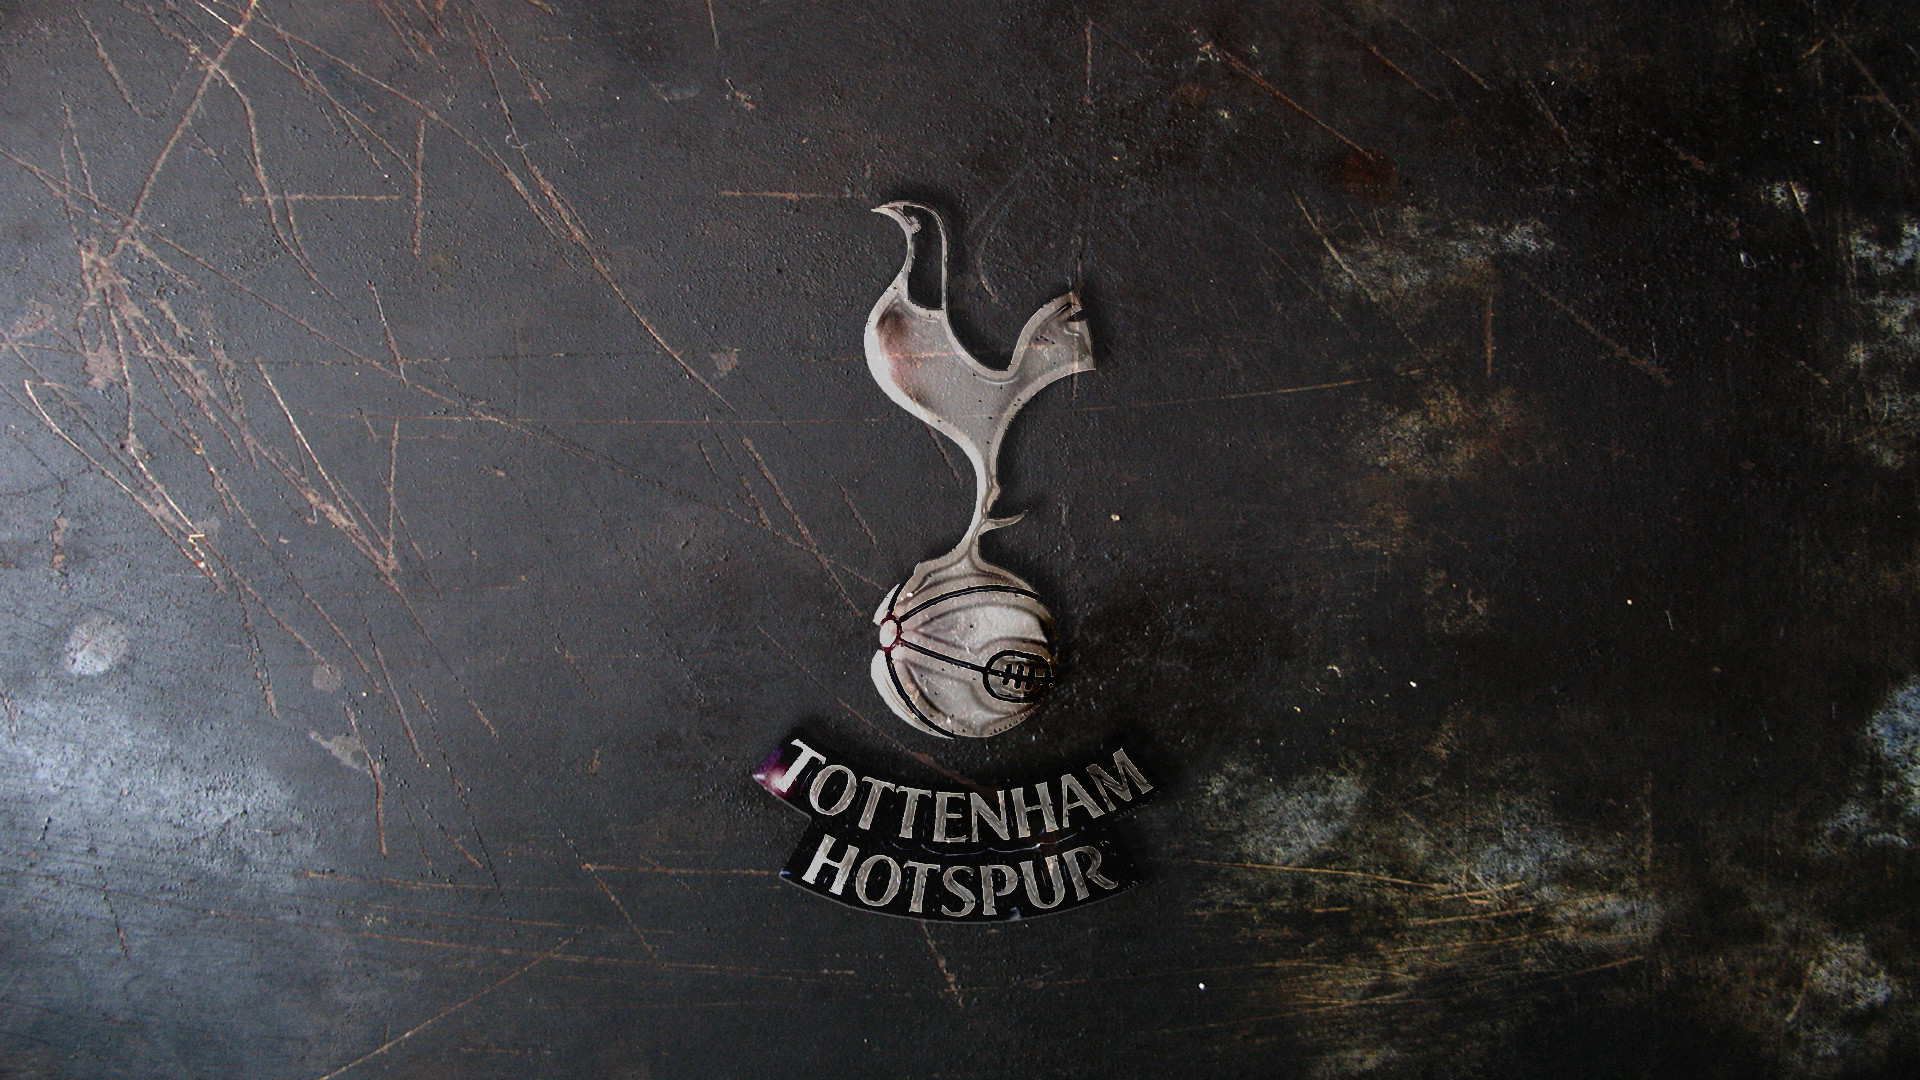 Free Download Tottenham Iphone Wallpaper Pictures Download 1920x1080 For Your Desktop Mobile Tablet Explore 75 Spurs Phone Wallpaper Nba Wallpaper Tottenham Hotspur Wallpaper